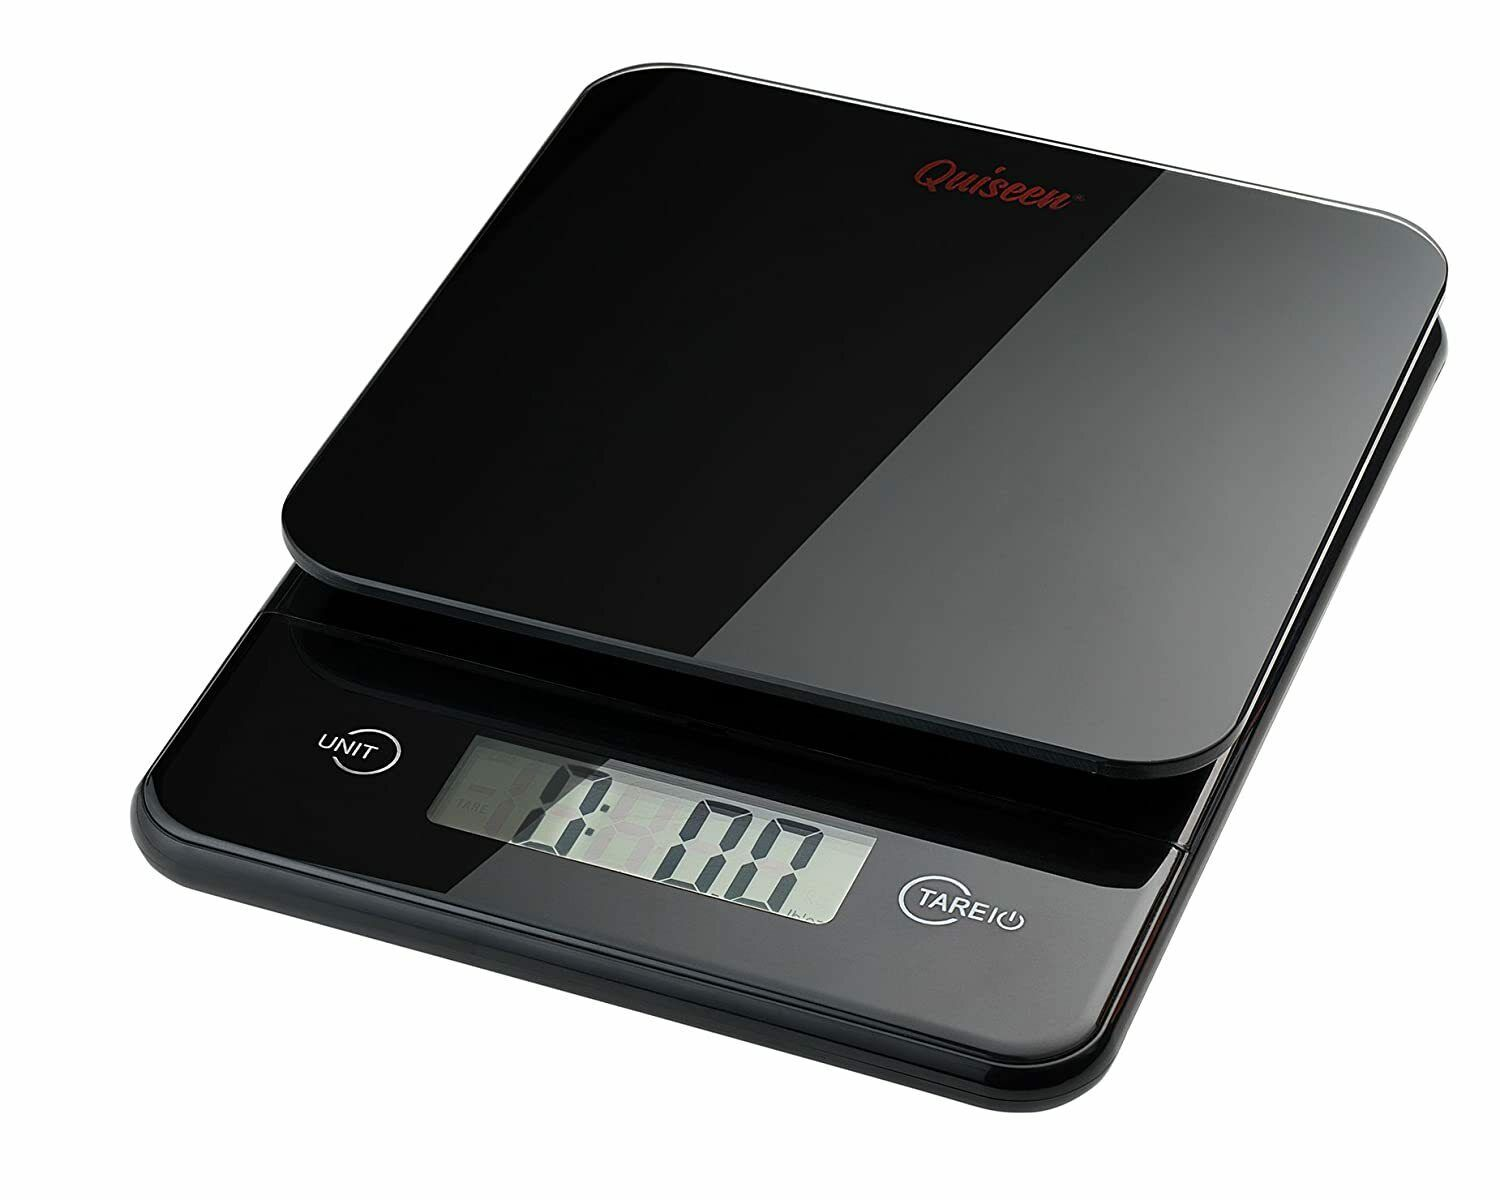 Compact Digital Kitchen Food Scale 11Lbs 5Kg Capacity Black